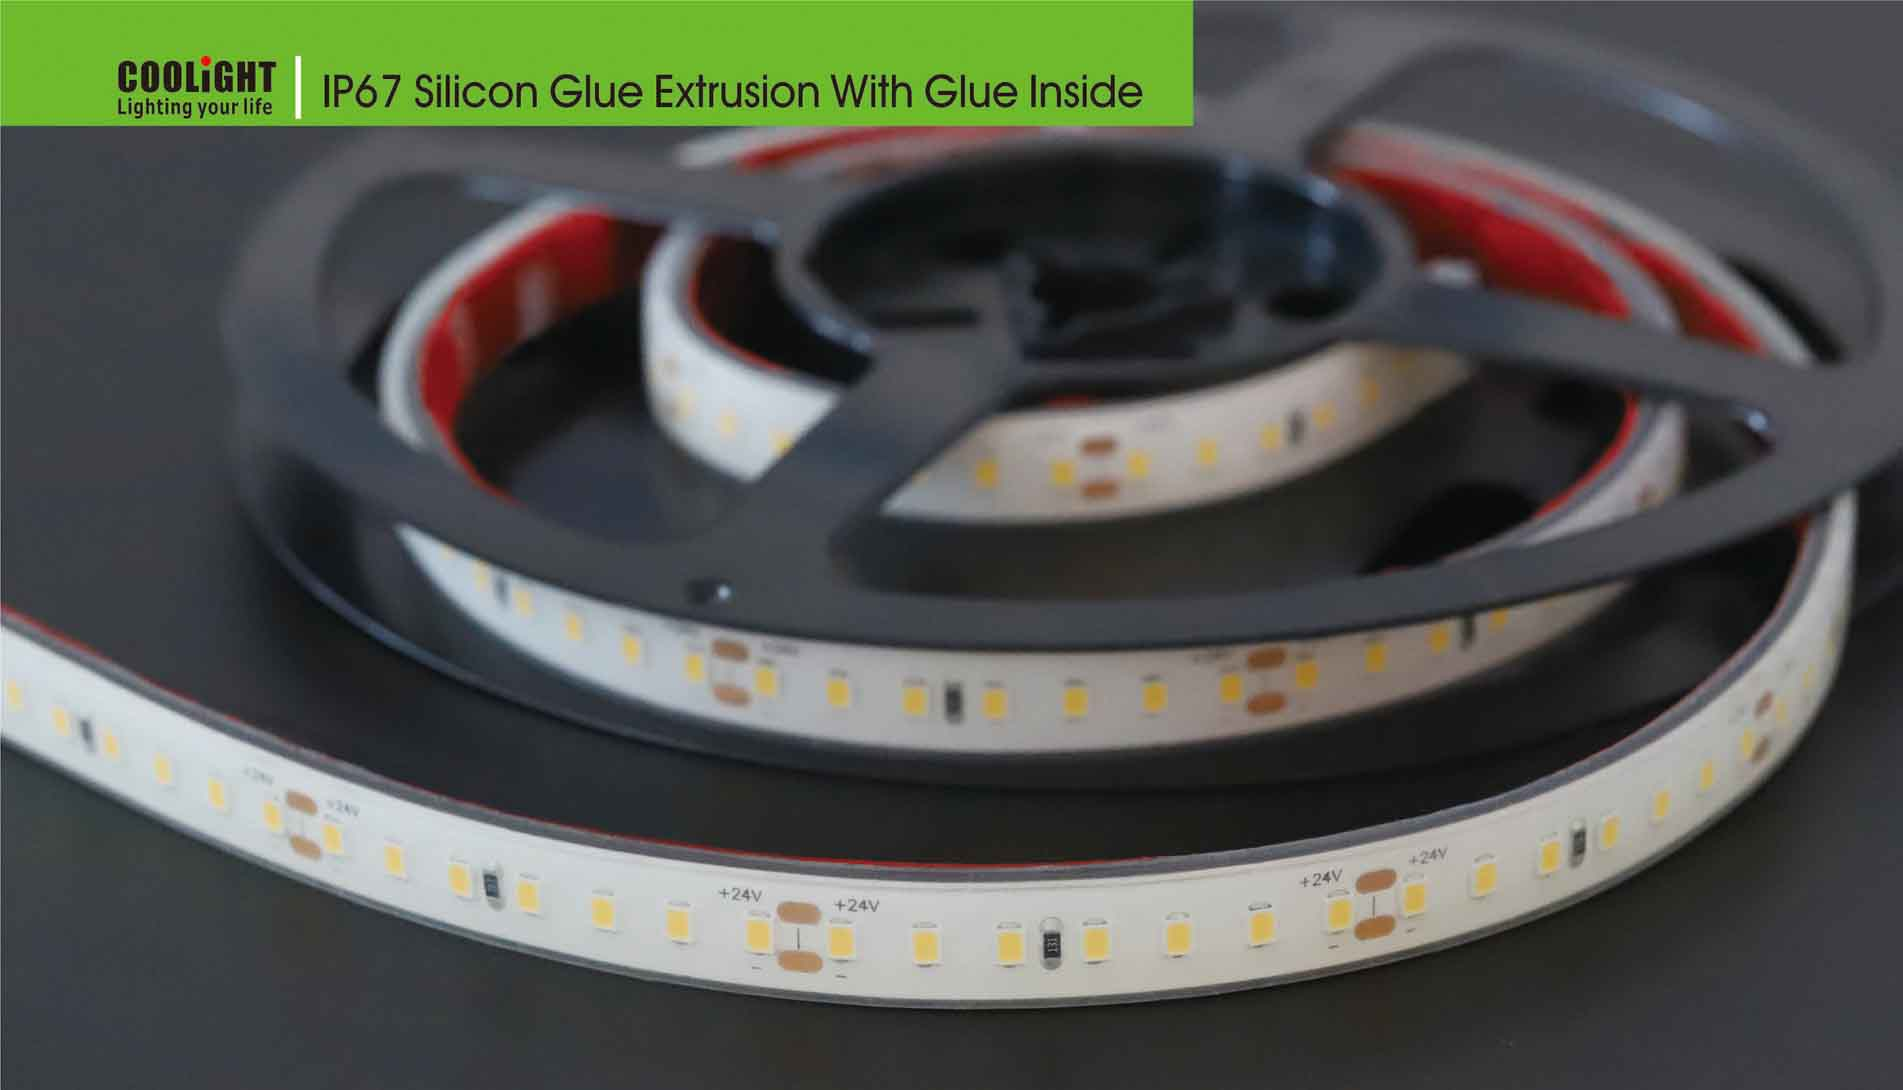 ip67 silicon glue extrusion with glue inside